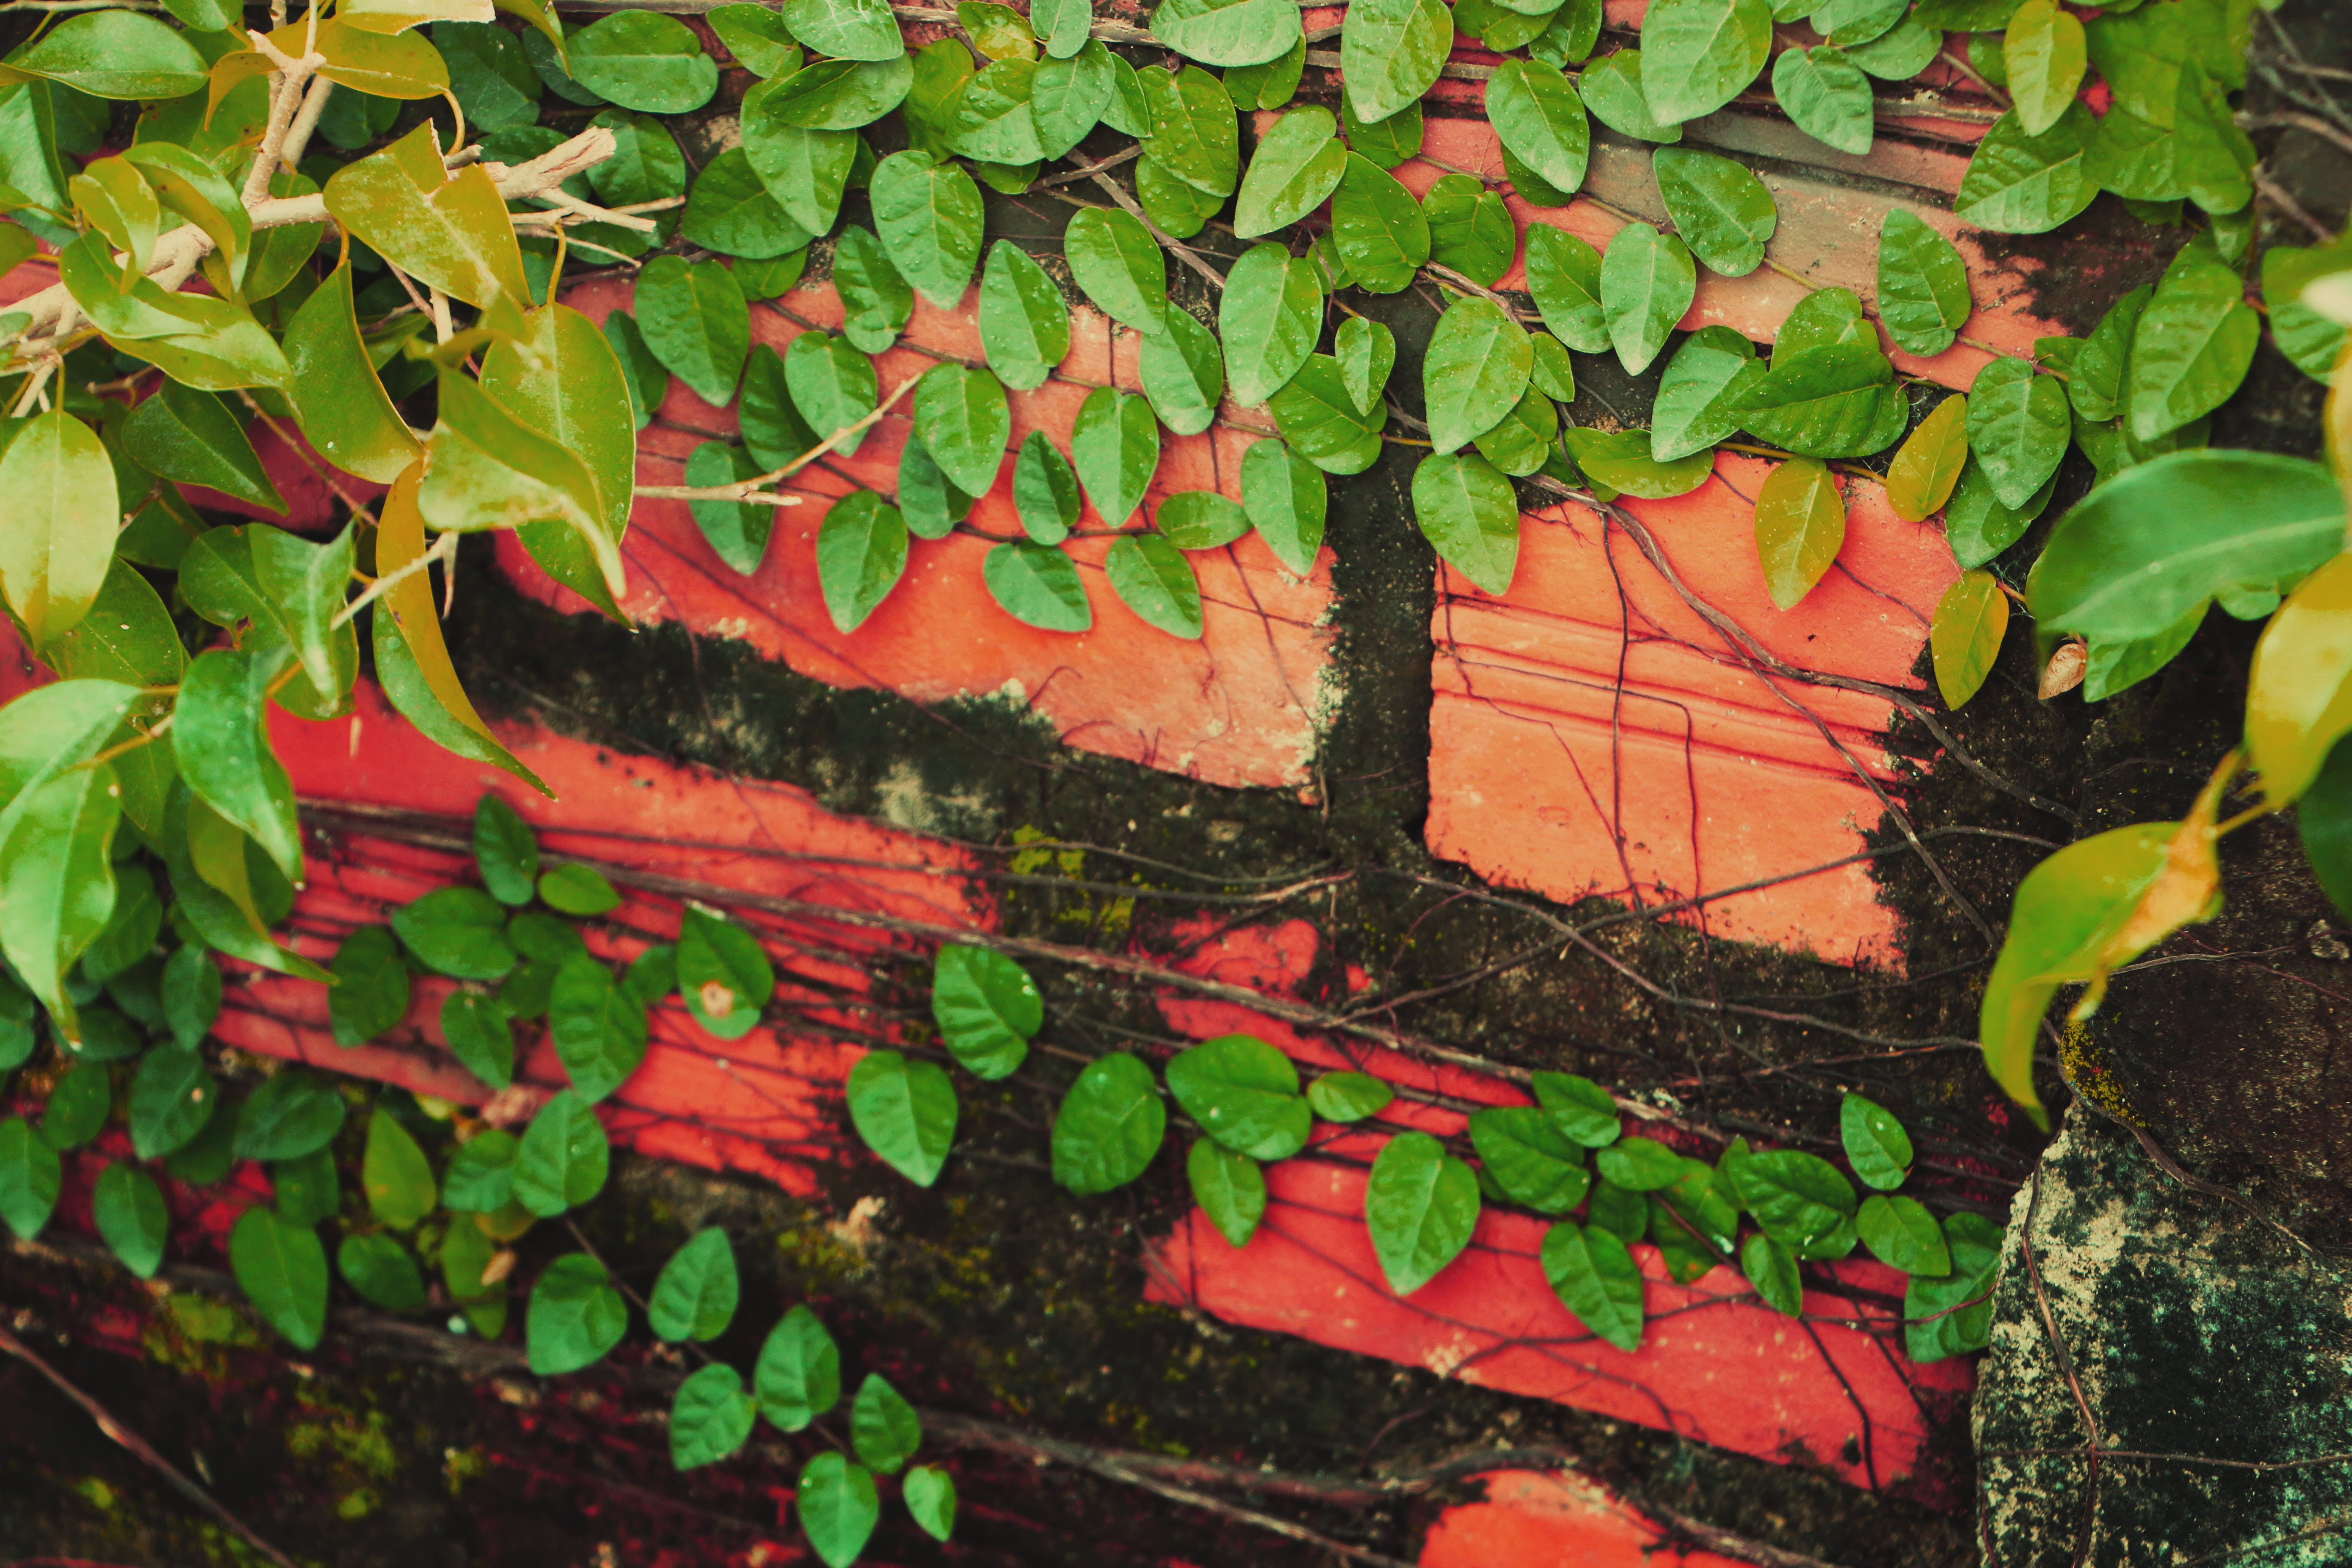 Close-up of Ivy Growing on Plant